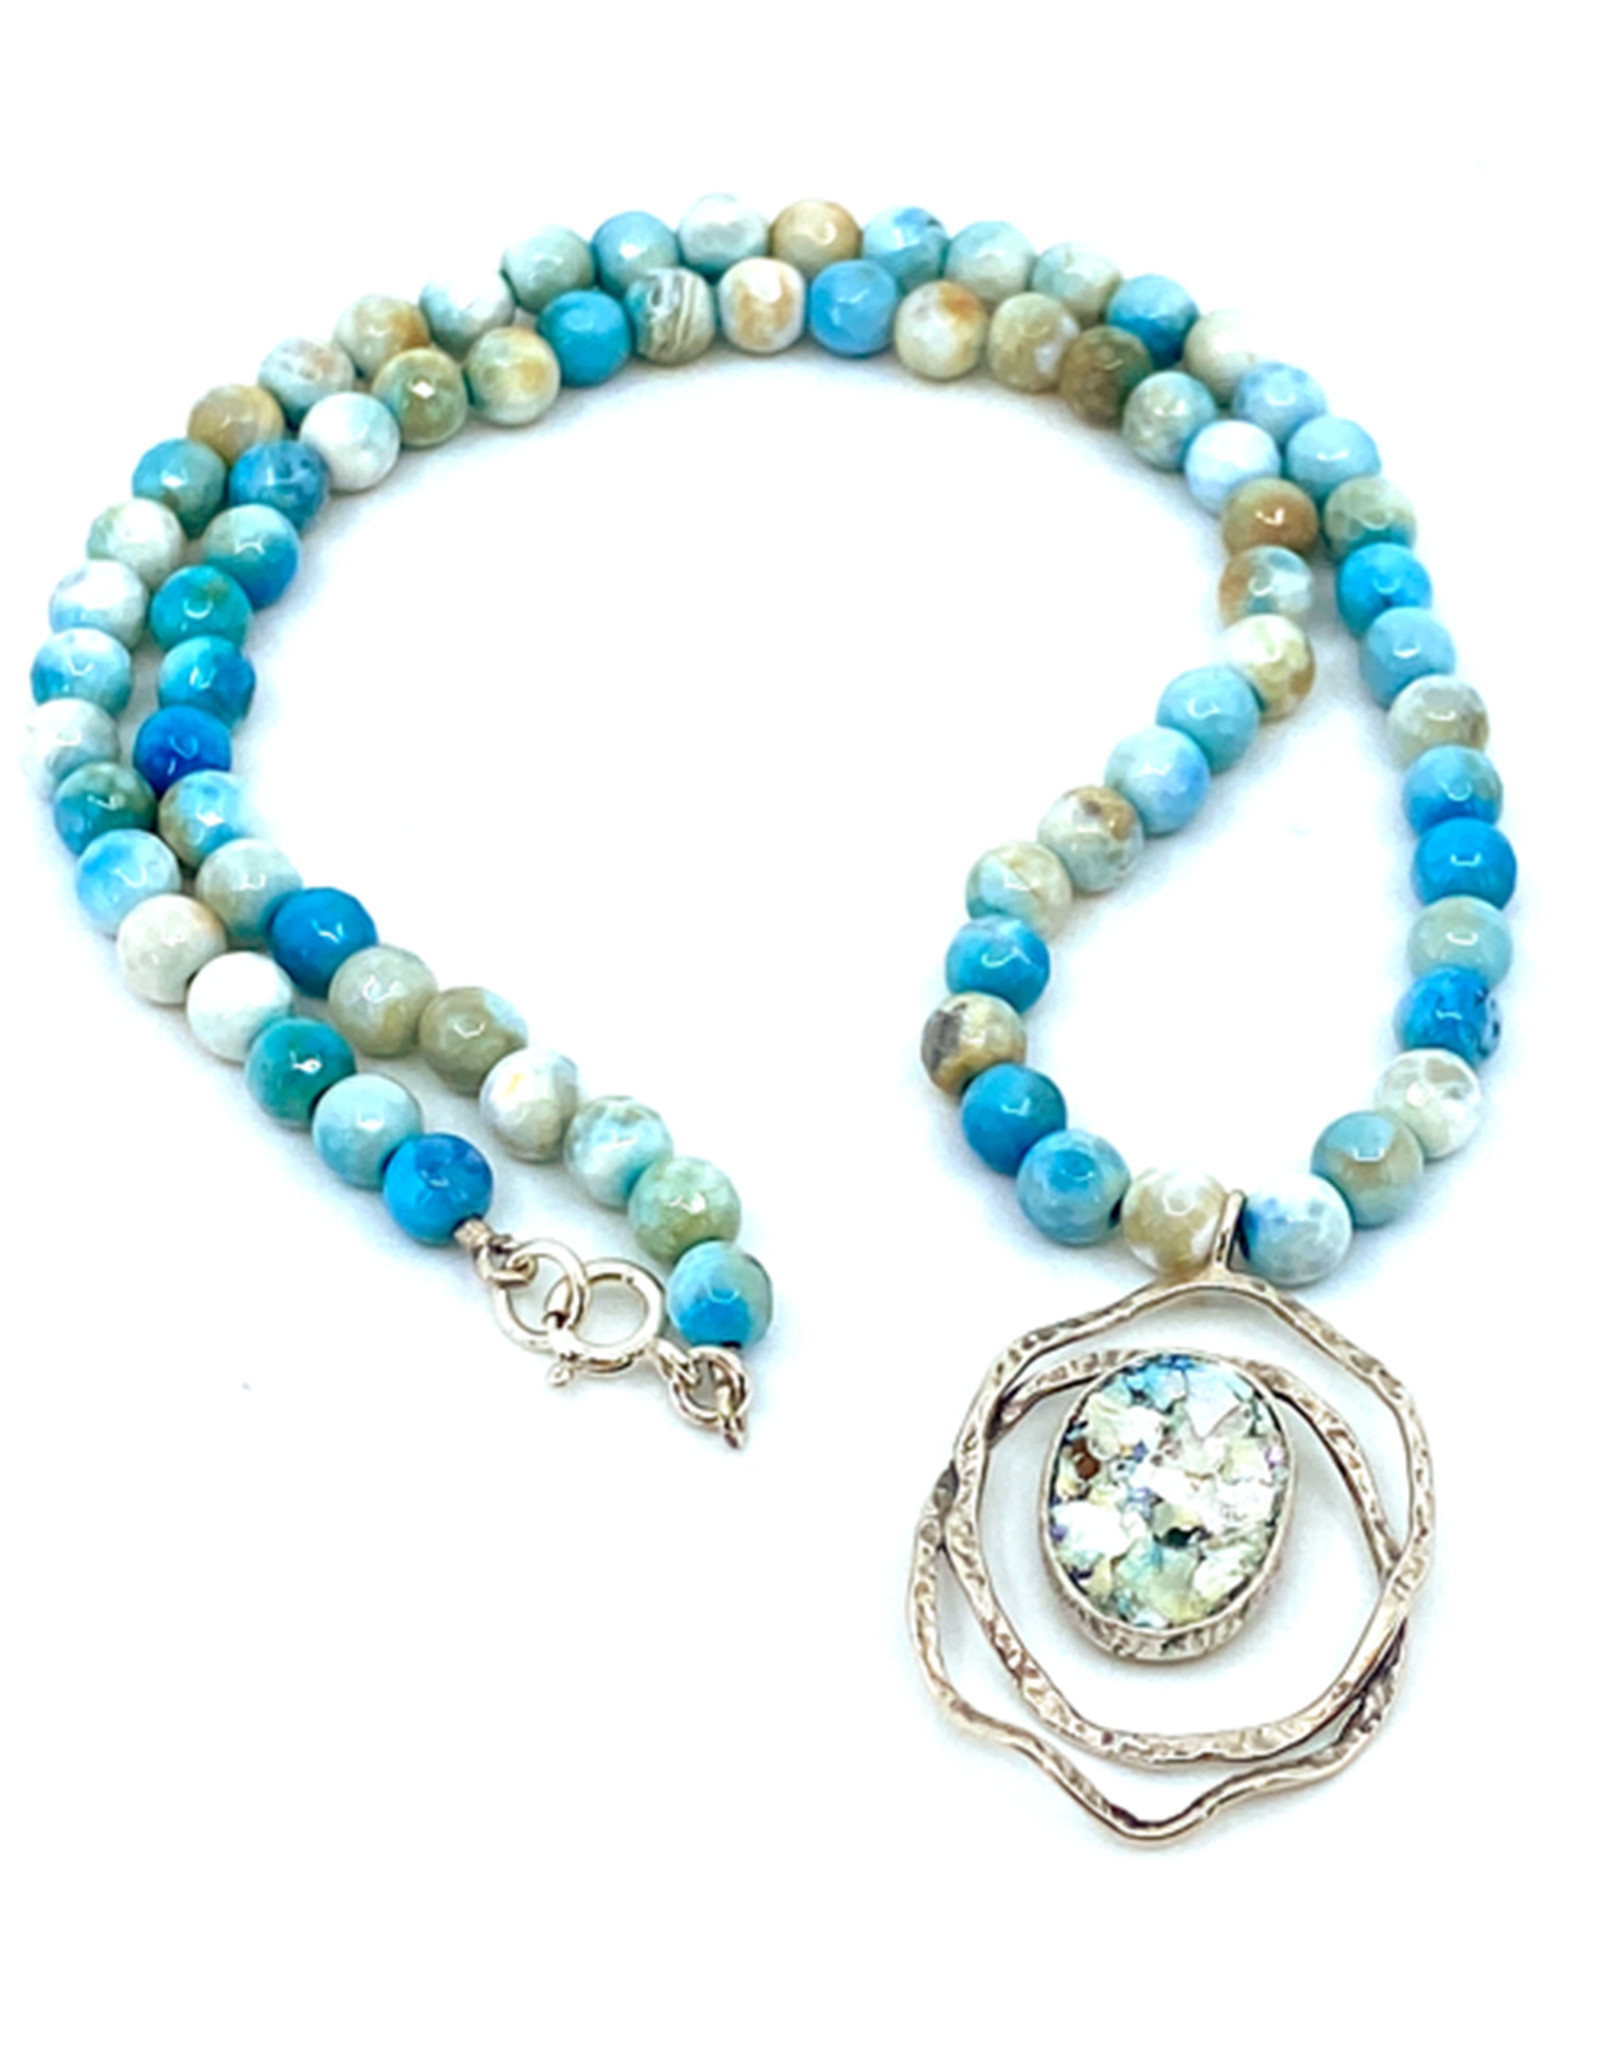 ANGIE OLAMI ROMAN GLASS & AGATE NECKLACE